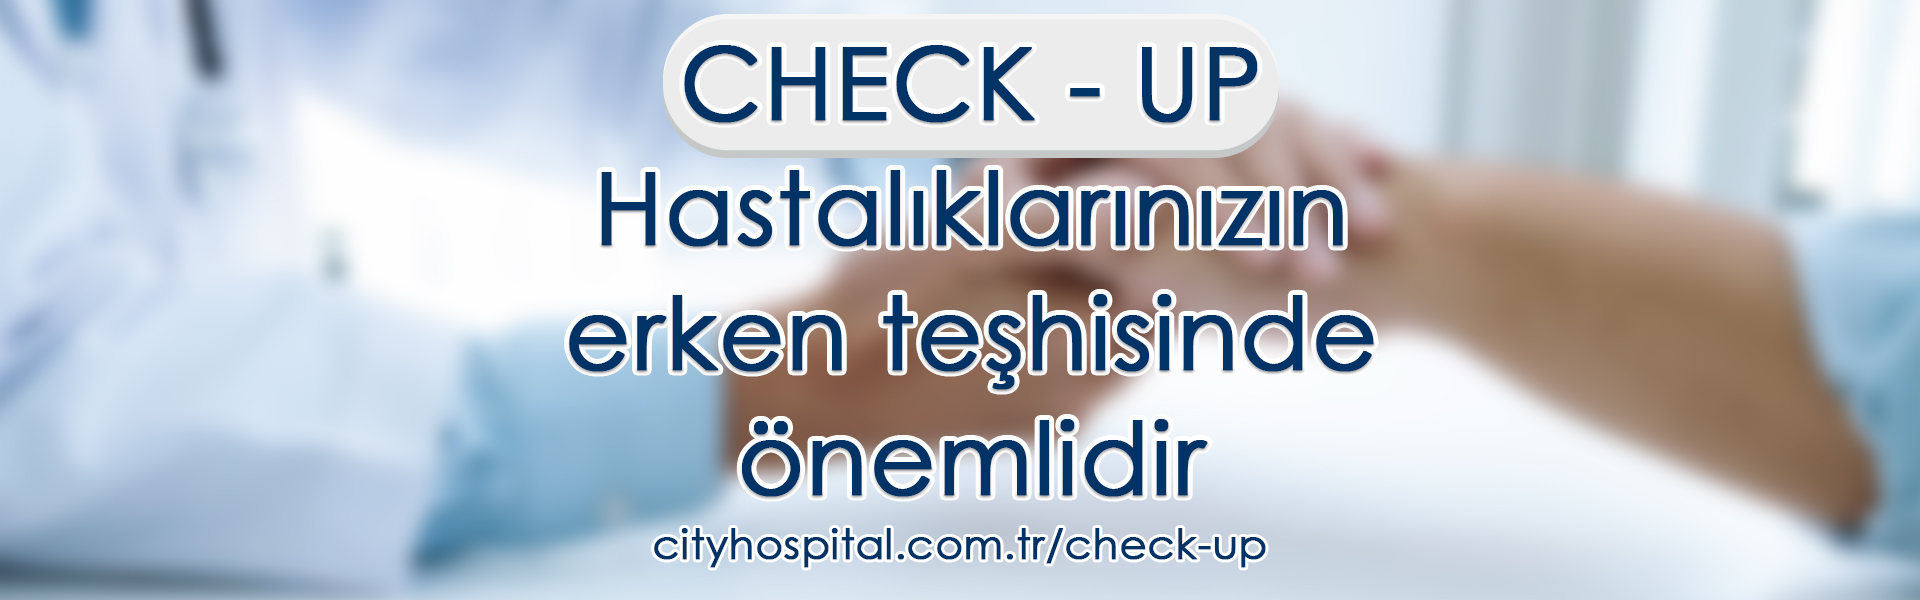 checkup-mersin-city-hospital